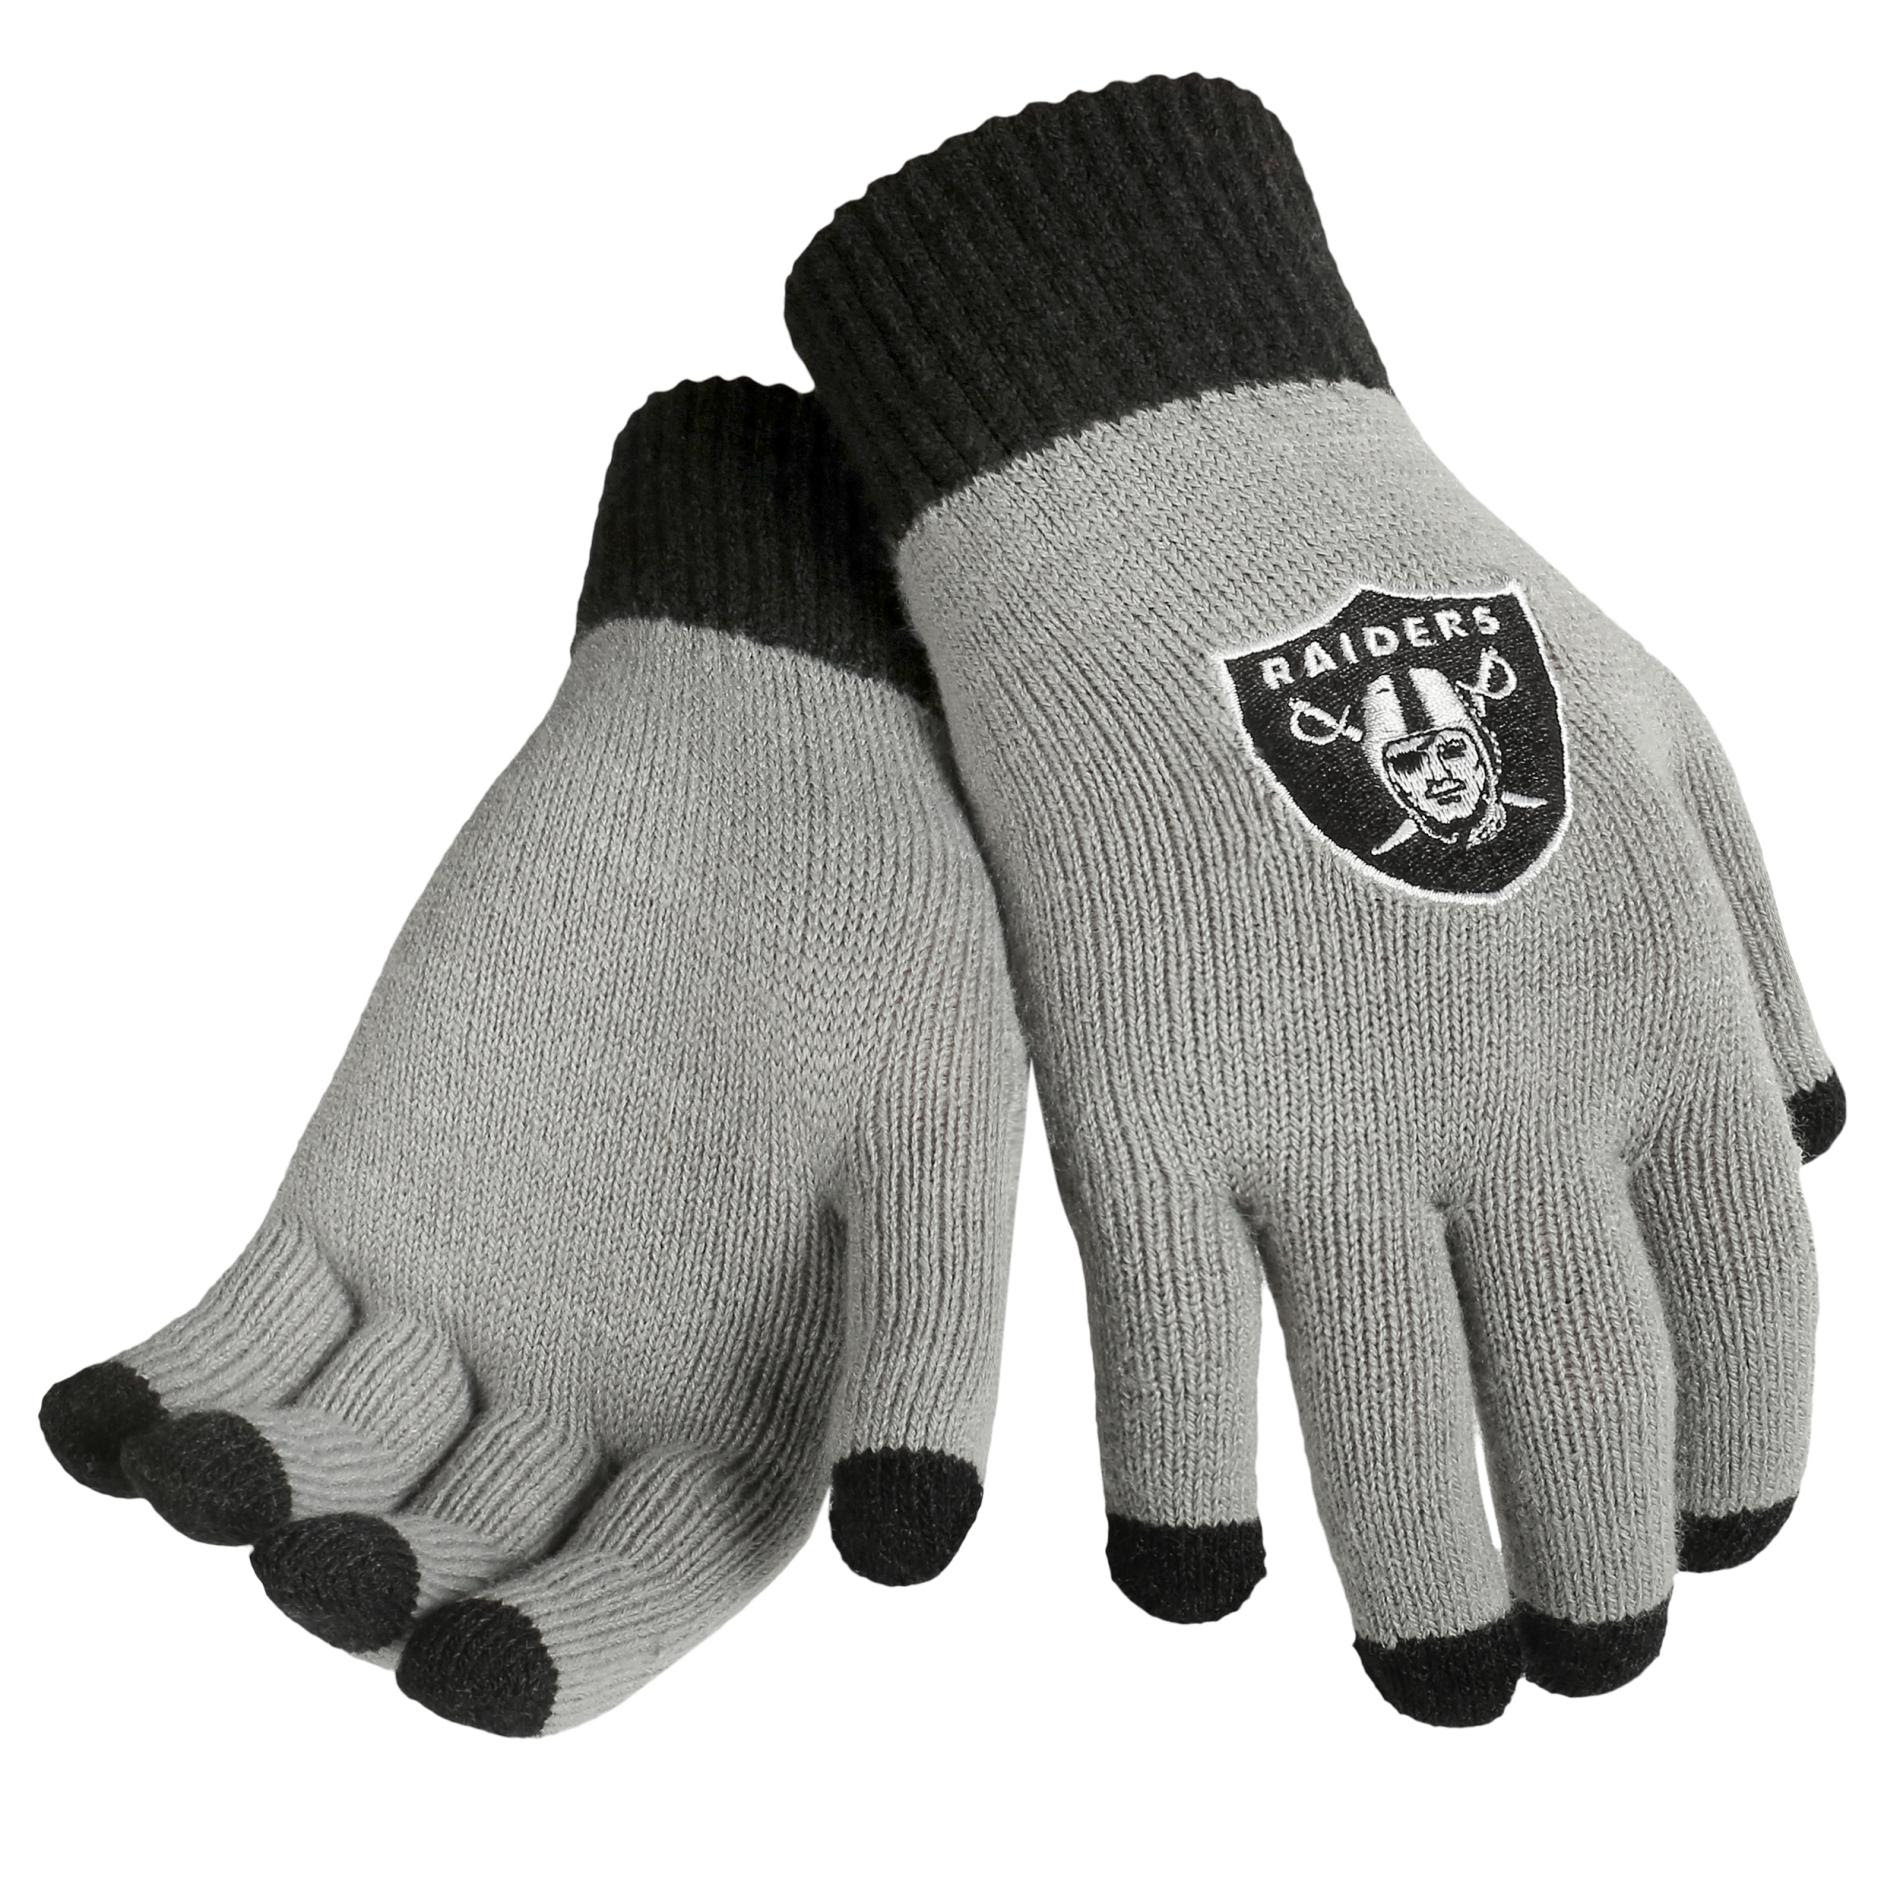 NFL Mens Knit Texting Gloves  Oakland Raiders